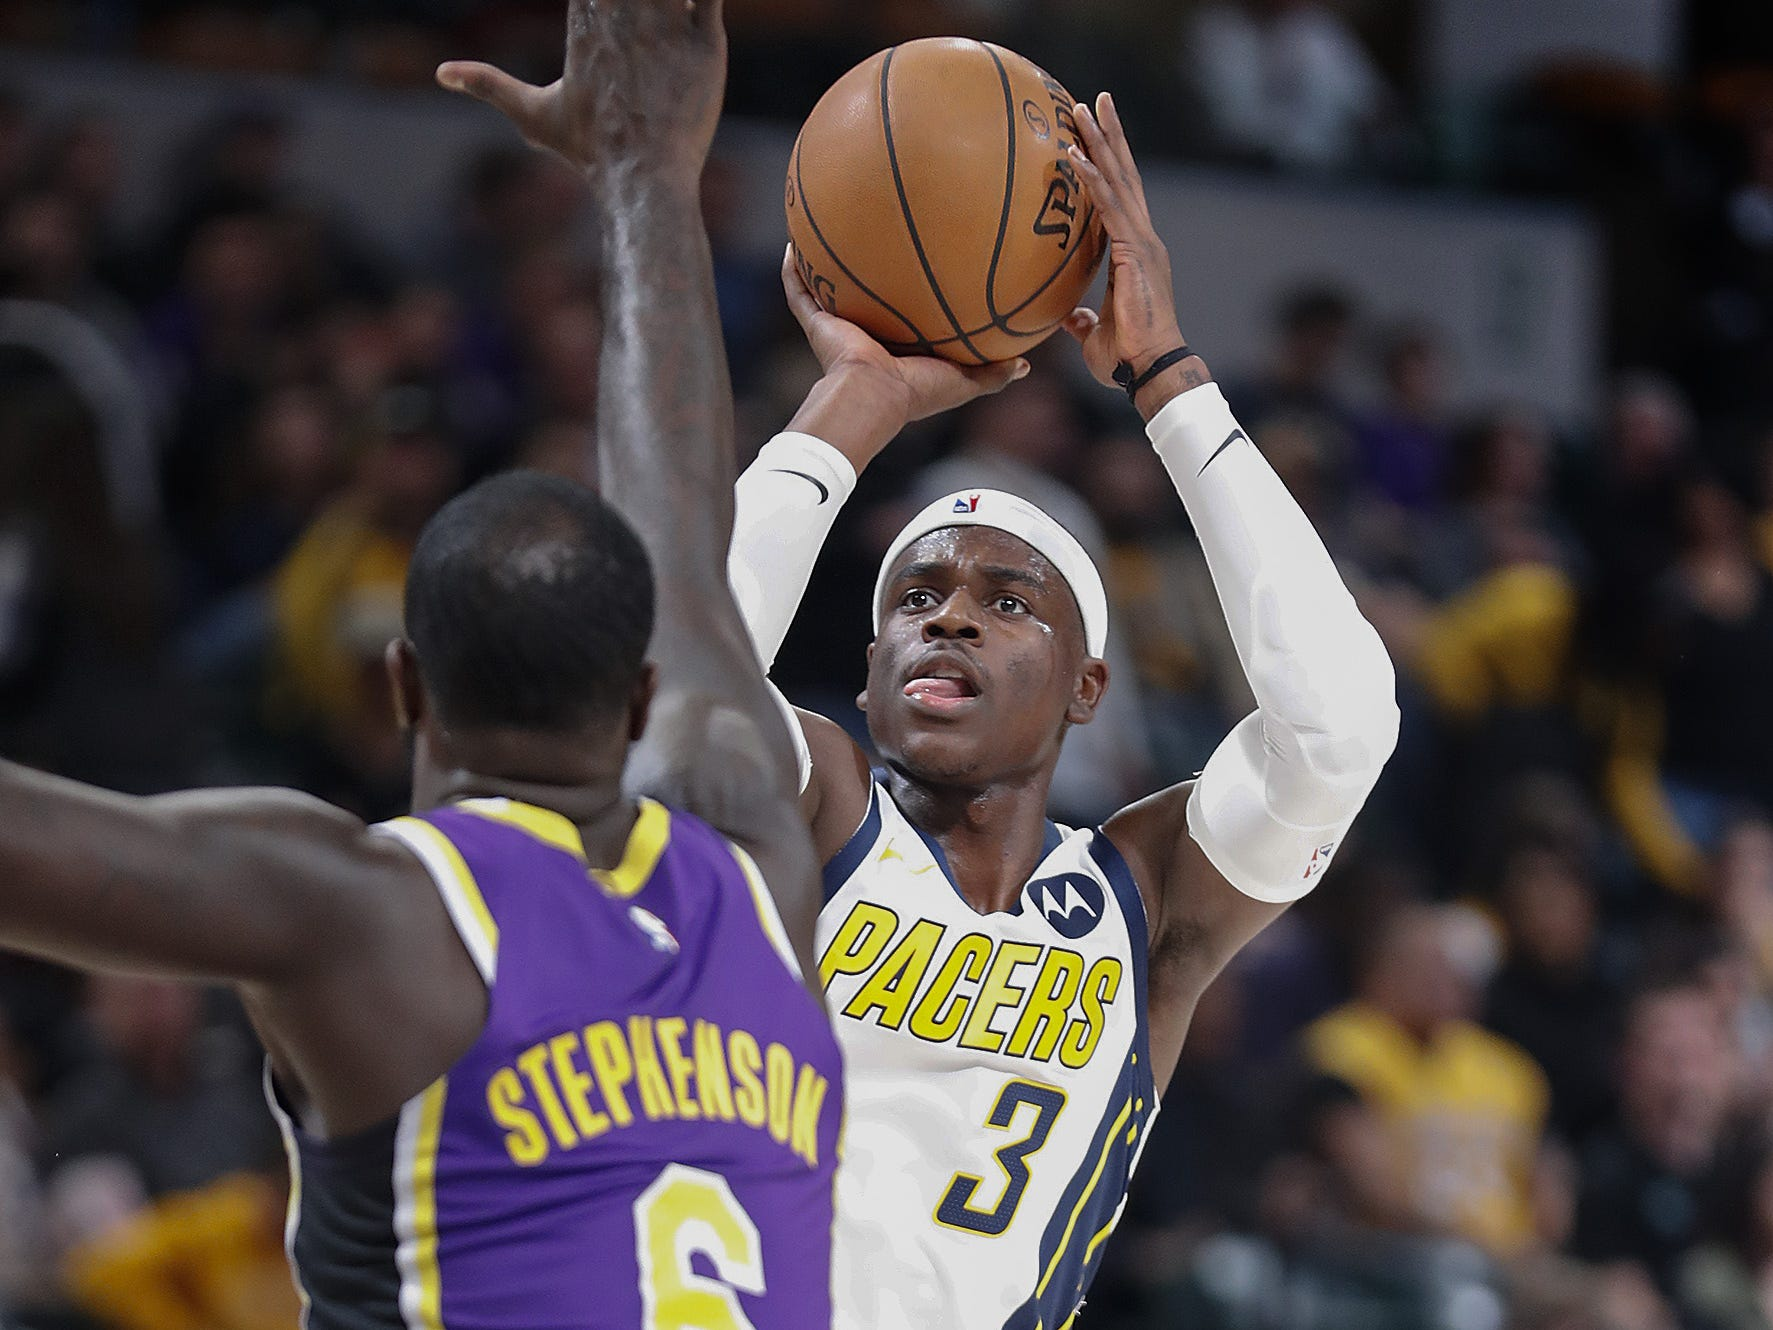 Indiana Pacers guard Aaron Holiday (3) shoots a three-pointer over Los Angeles Lakers guard Lance Stephenson (6) in the second half of their game at Bankers Life Fieldhouse on Tuesday, Feb. 5, 2019.